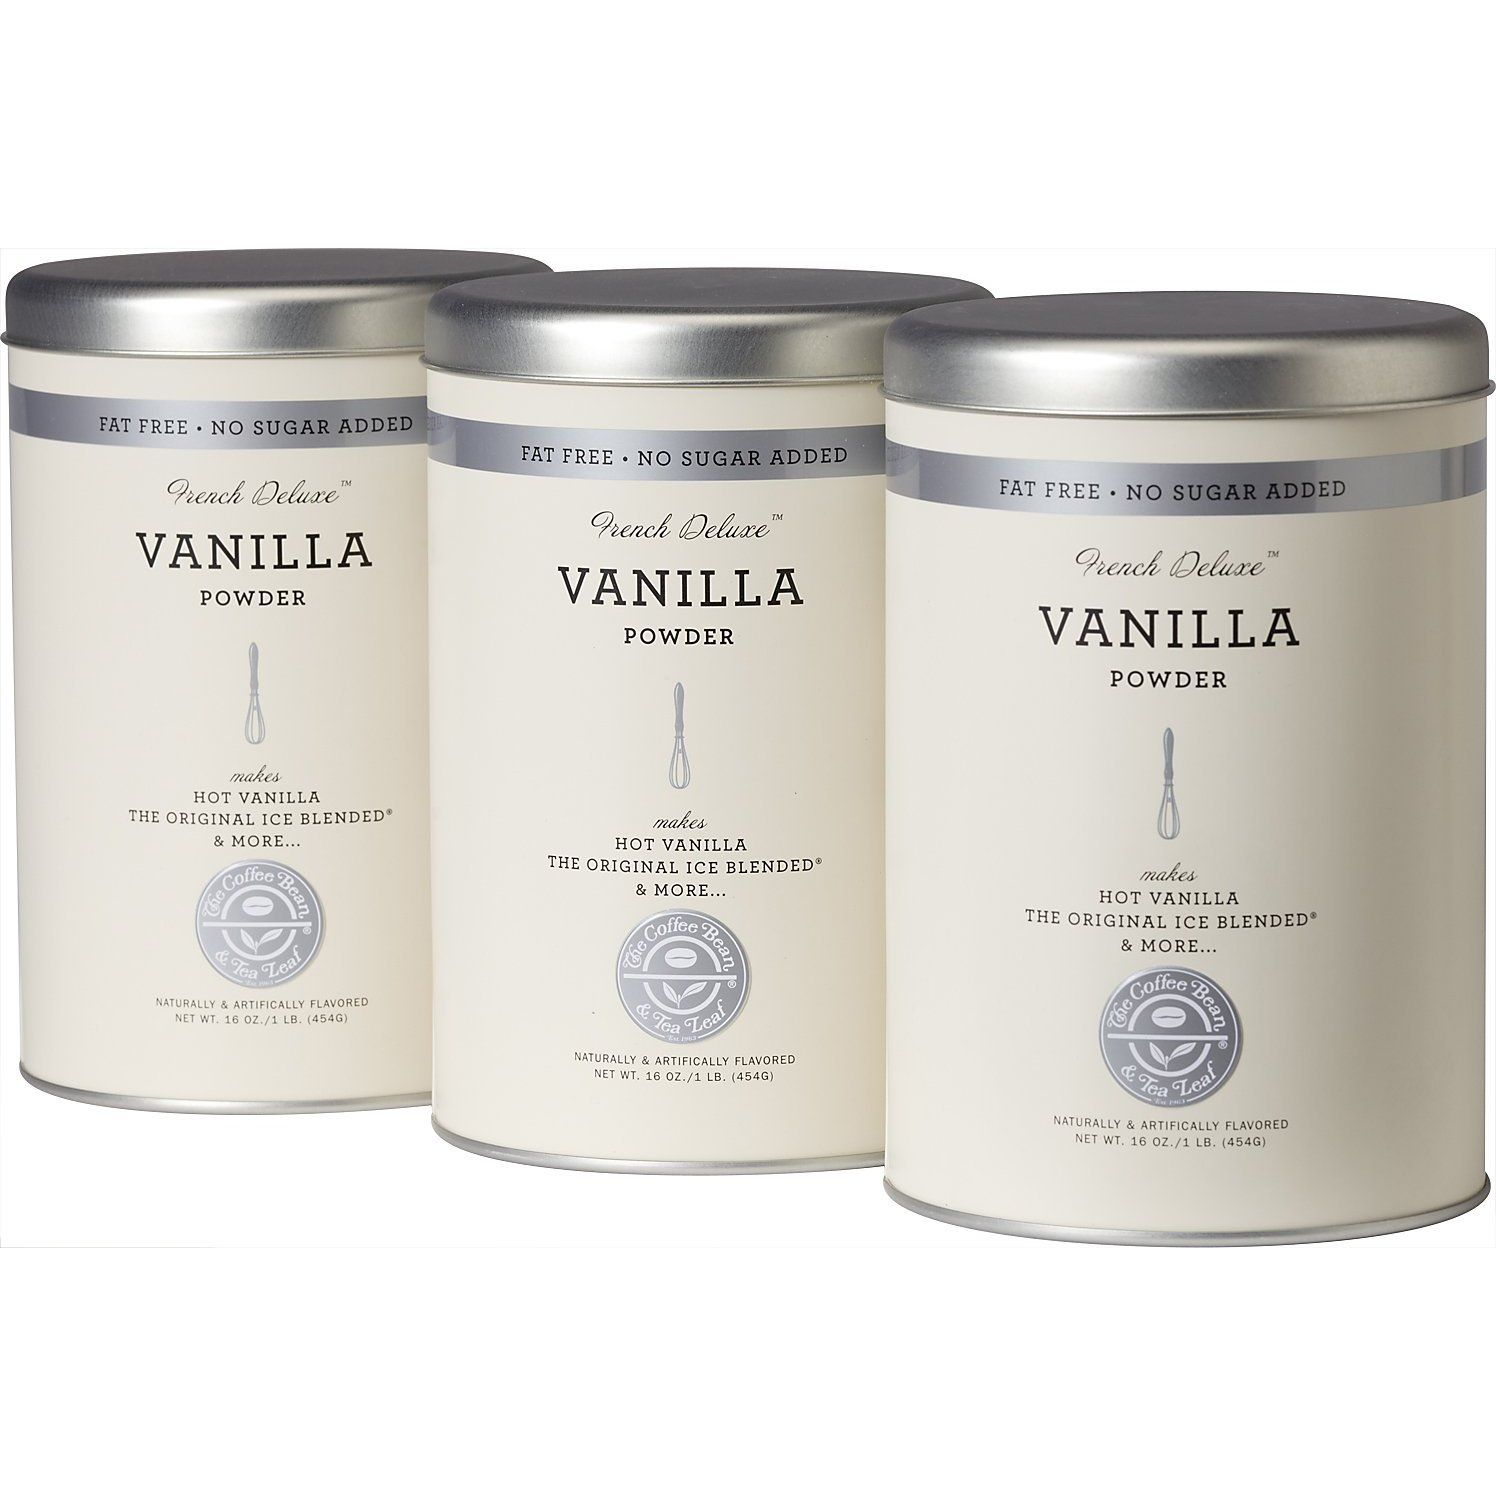 The Coffee Bean Tea Leaf Have By Far The Best Vanilla Lattes Trust Me Snag This 3pack On Amazon Tea Leaves Coffee Beans Blended Drinks